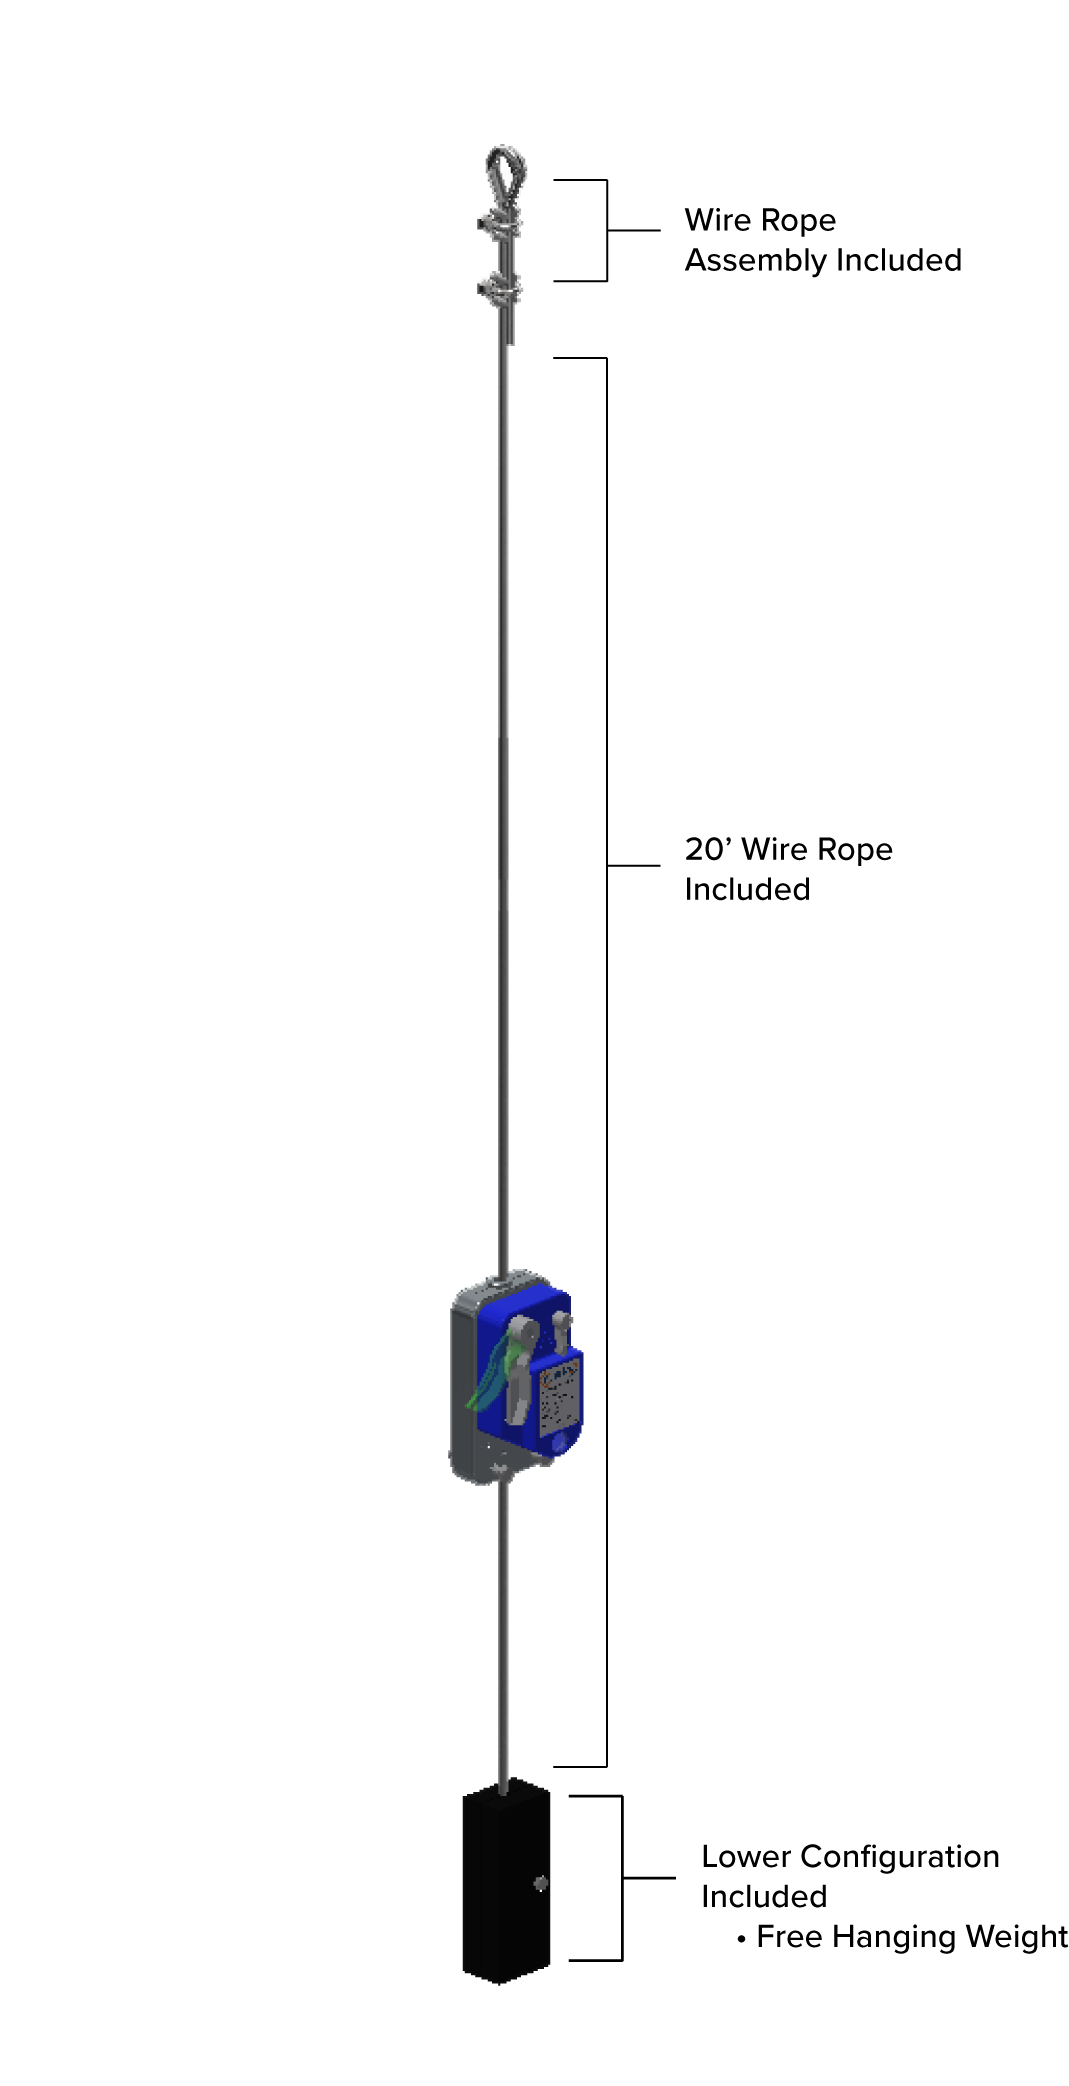 Hoist Zone Secondary Brake Device Free Hanging Weight